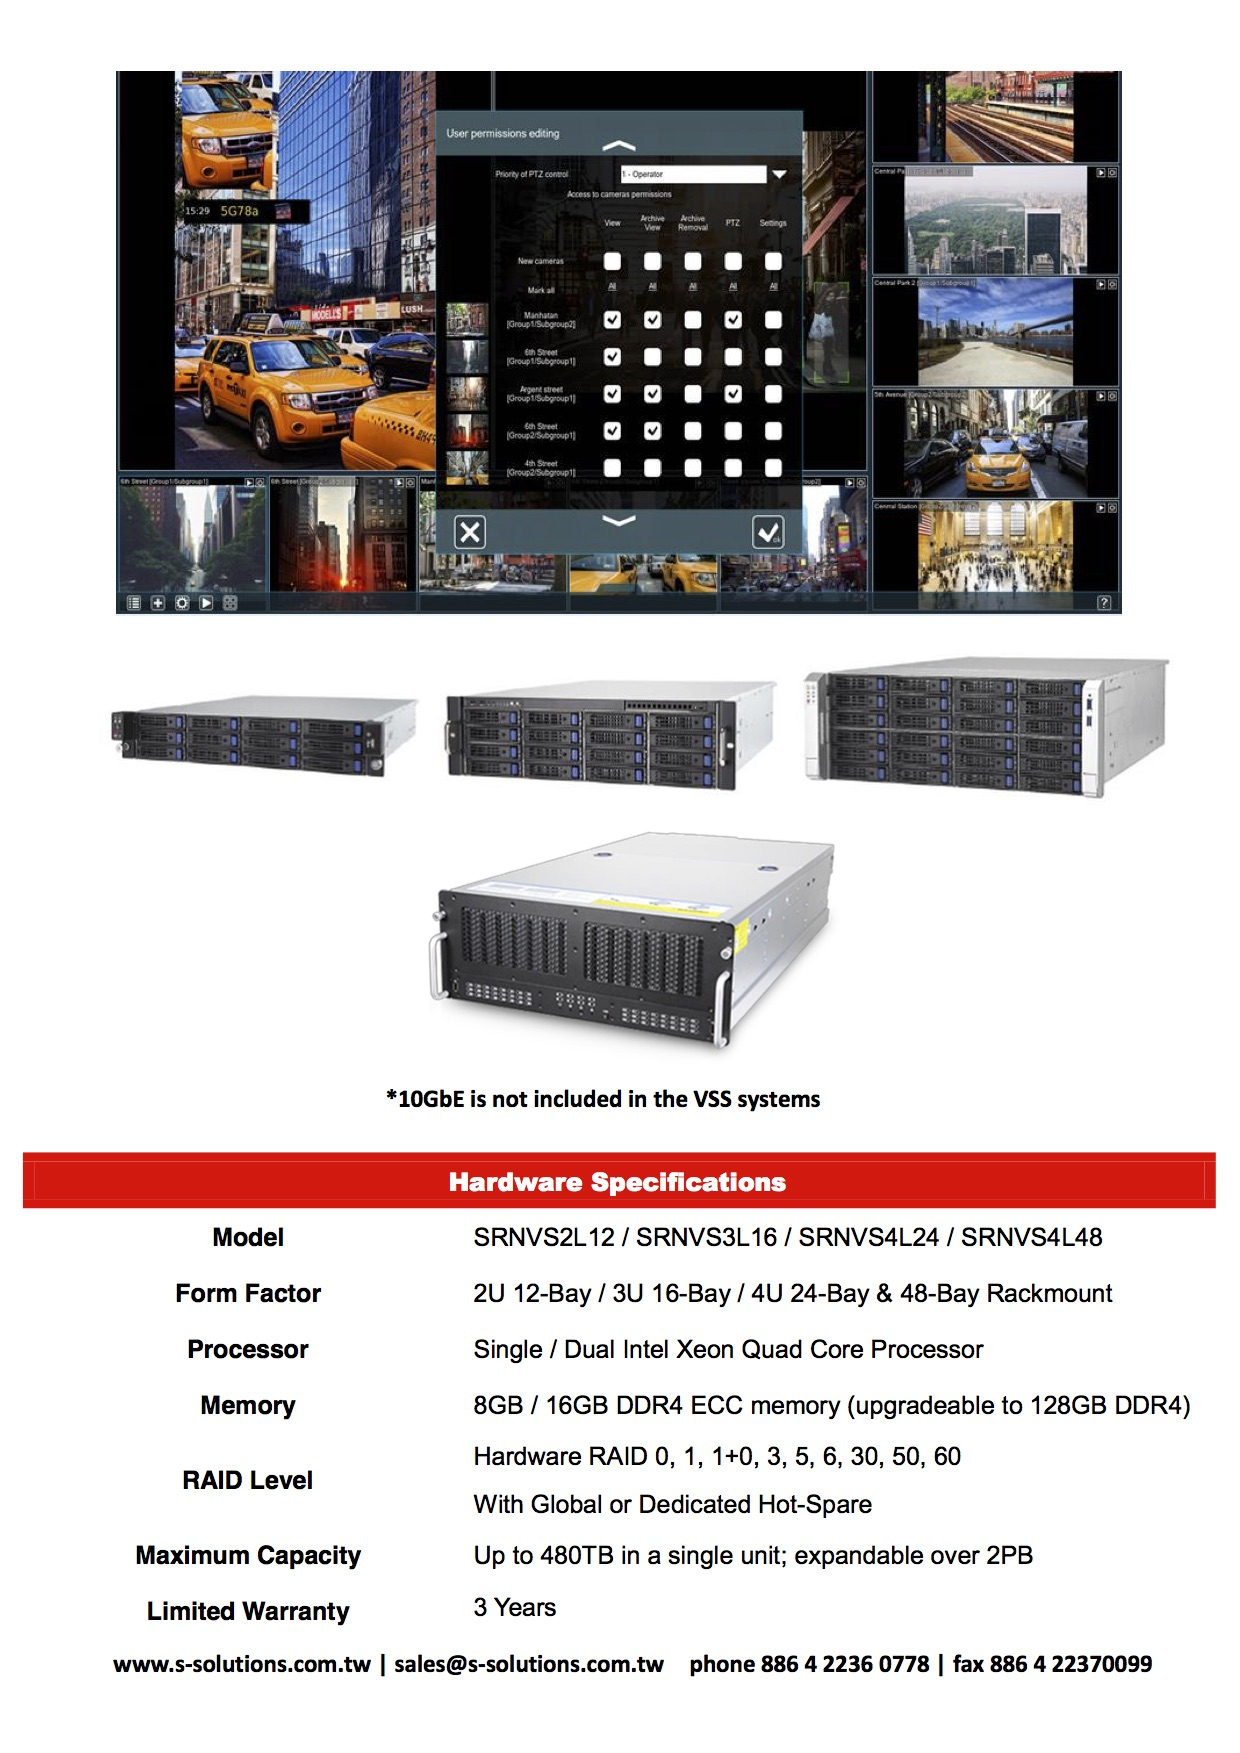 S Solutions SRN Video Surveillance Storage (VSS) Series DM 2016